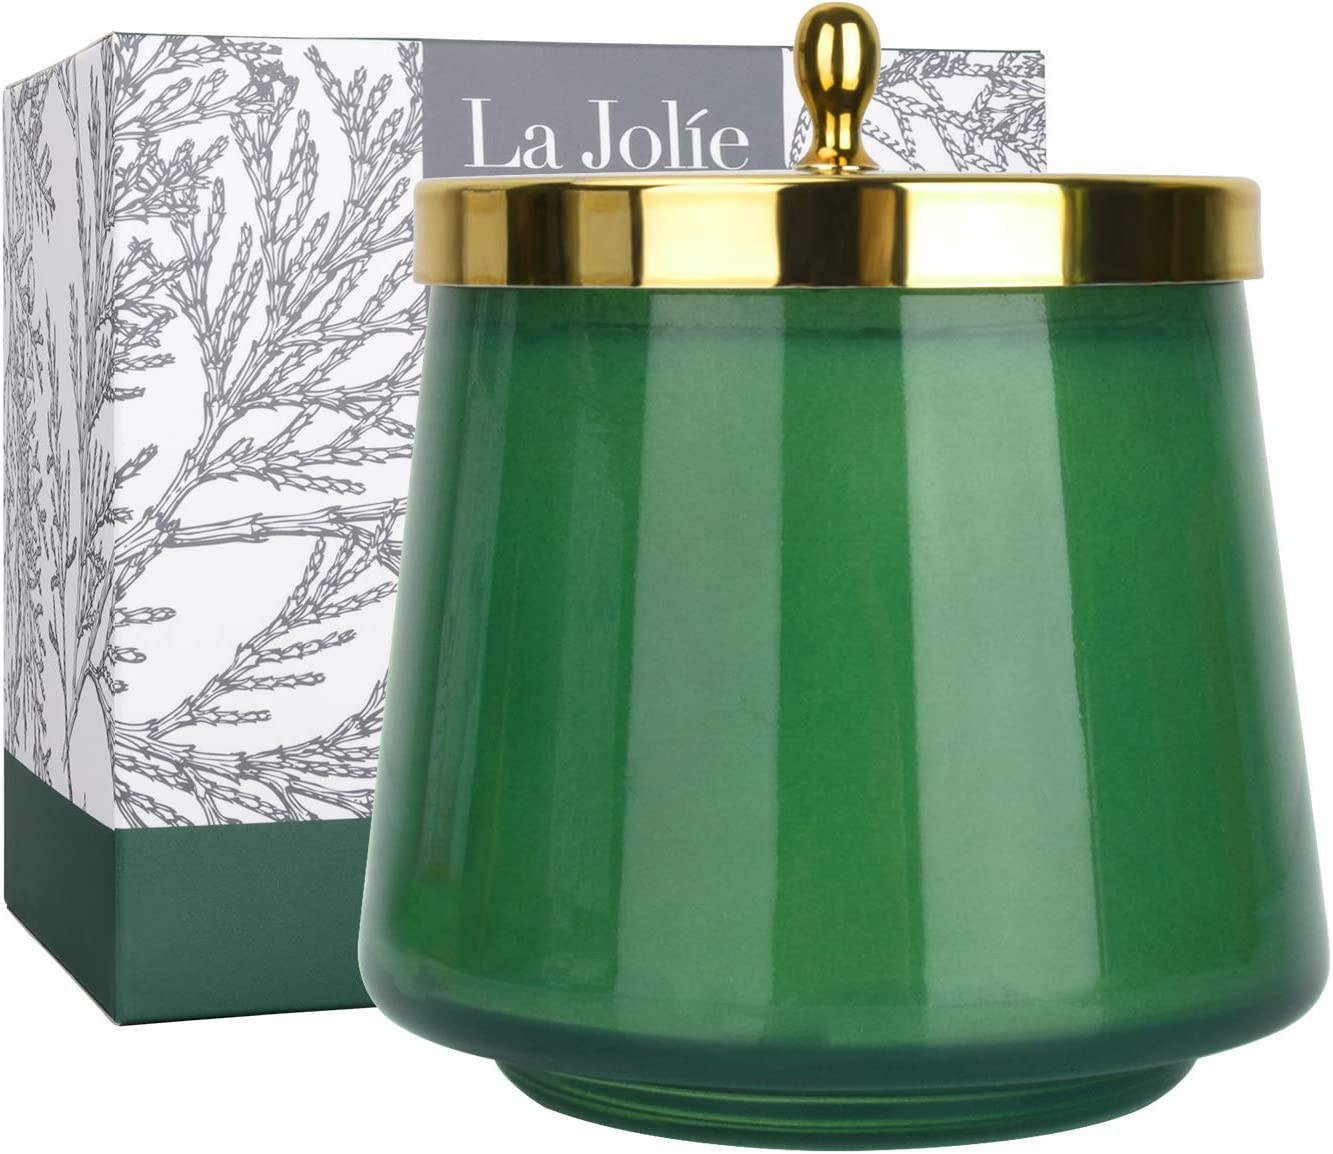 LA JOLIE MUSE Cedar & Balsam Scented Candle, Christmas Candle Gift, Jar Candle for Home, Holiday Candle, 75 Hours Long Burning, 12.3 Oz